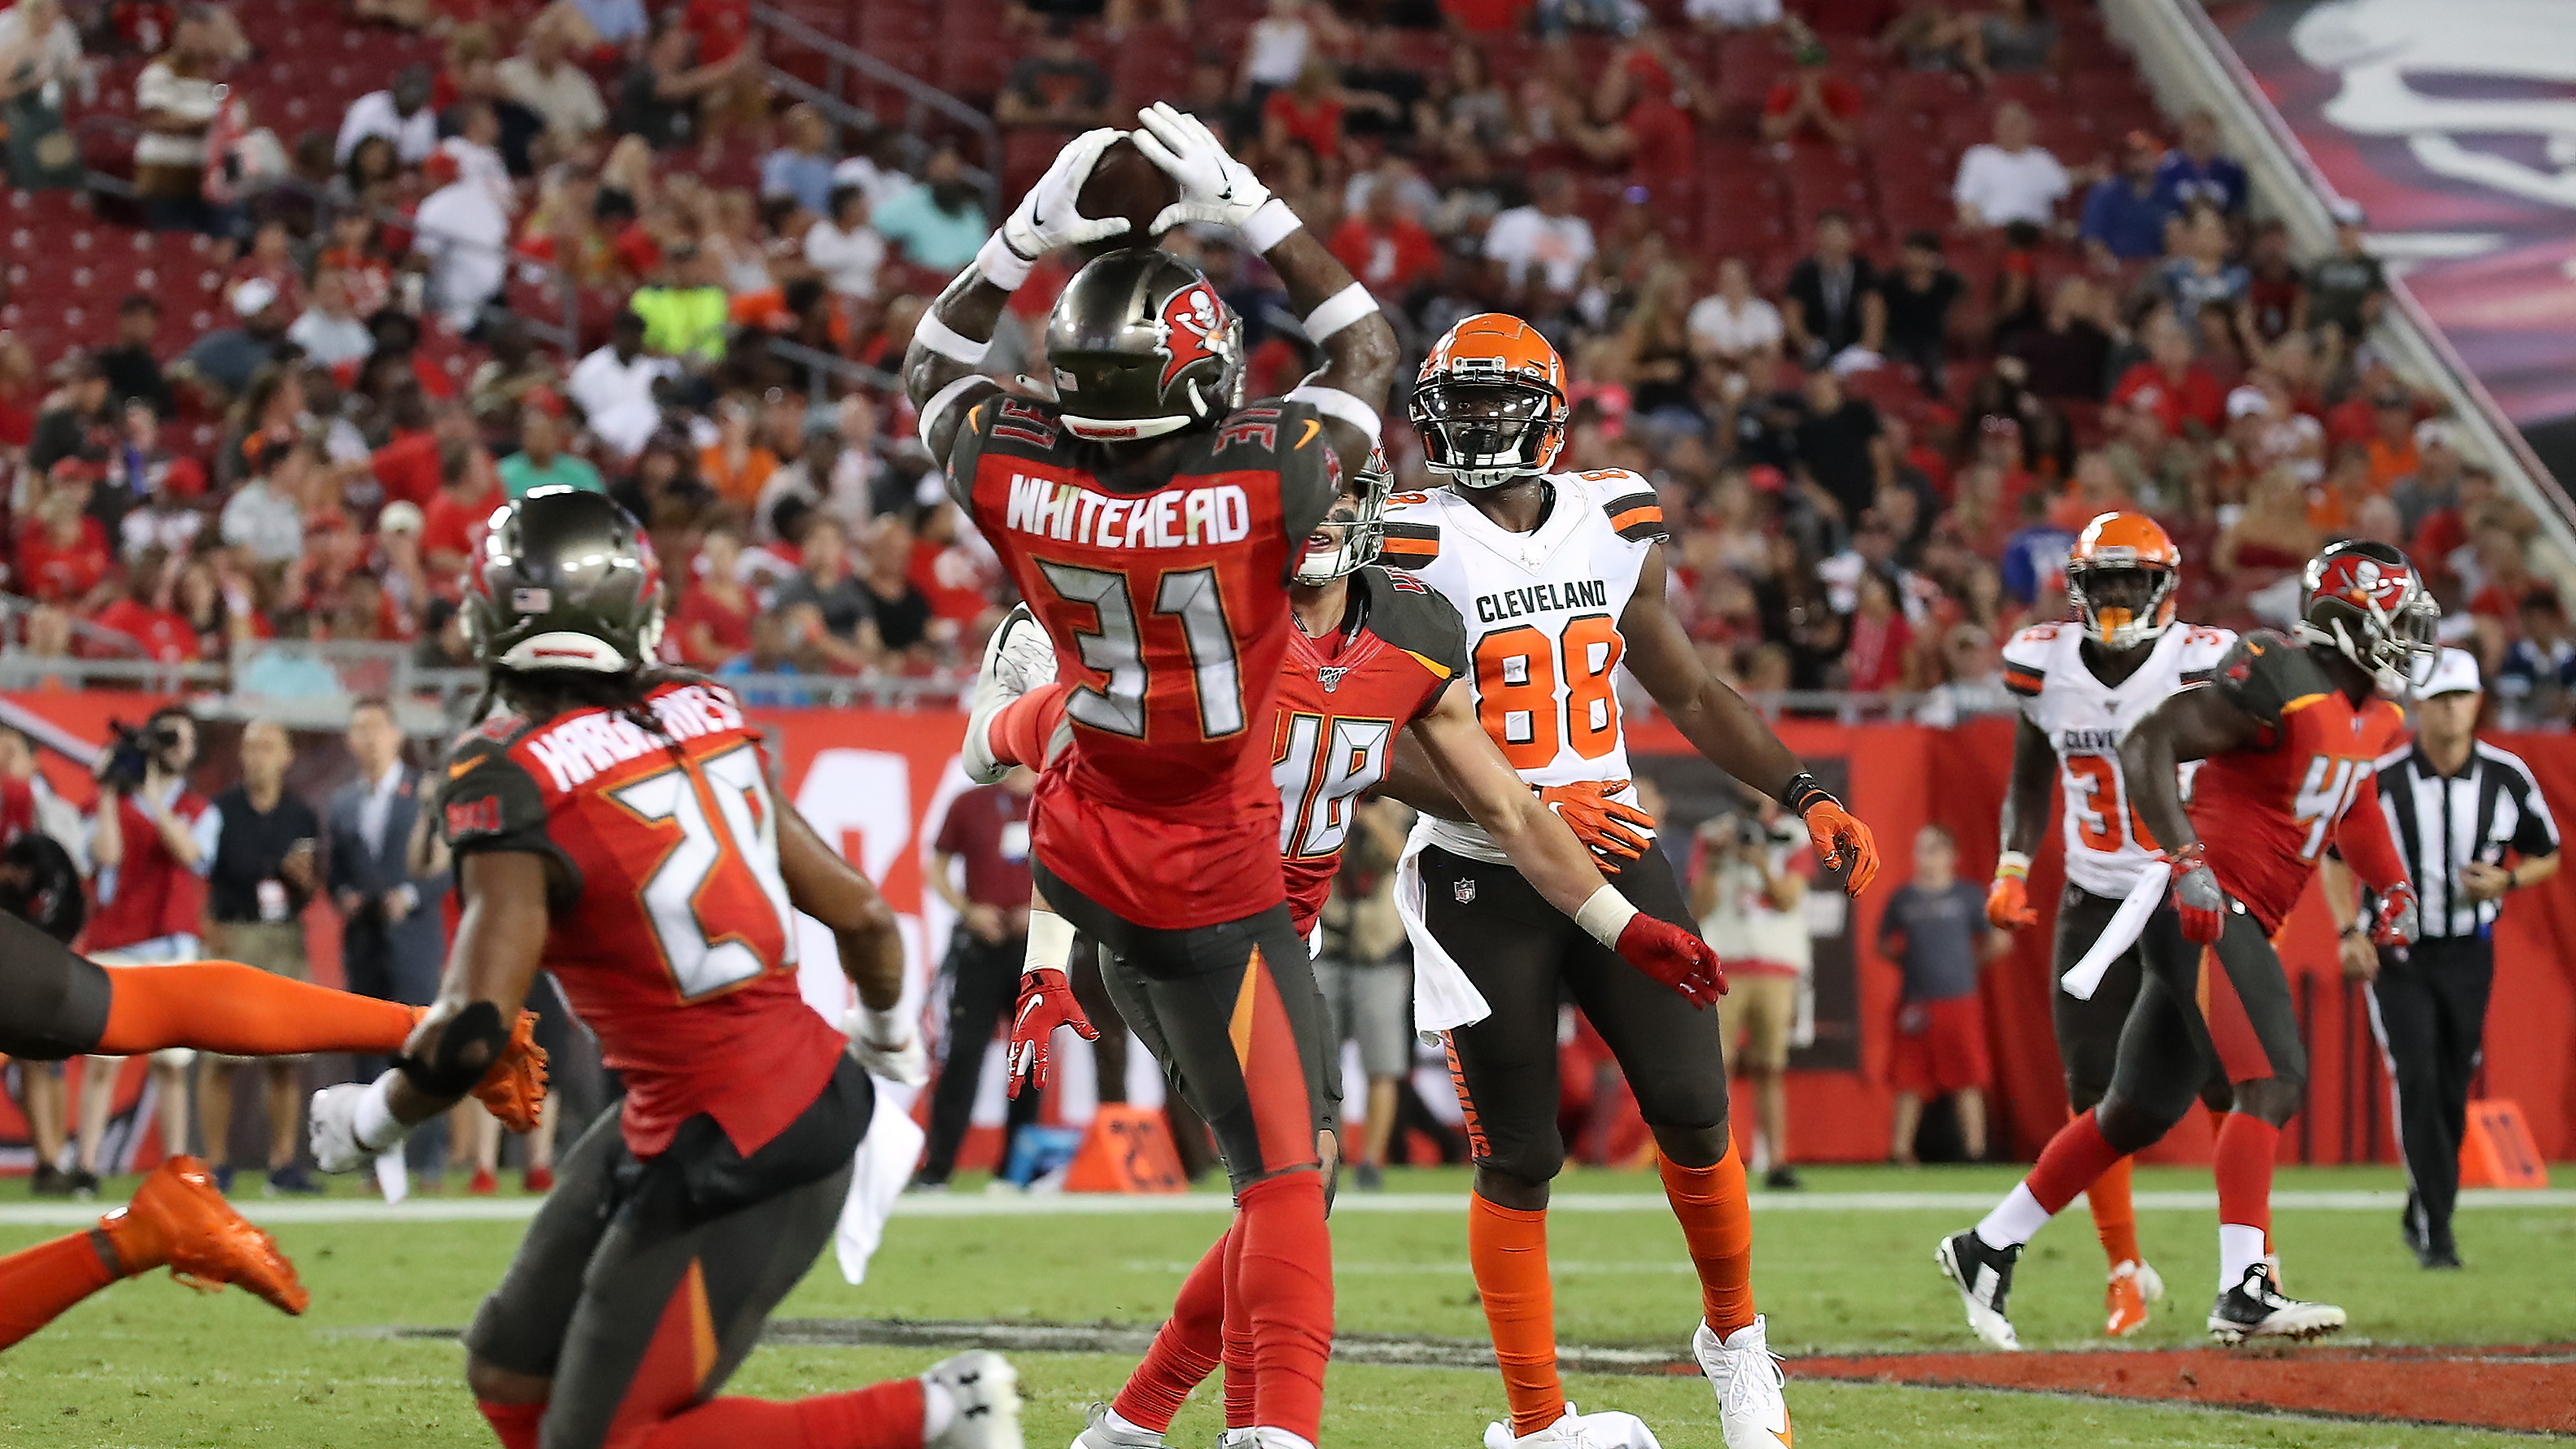 91d136df Tampa Bay Buccnaeers 13, Cleveland Browns 12